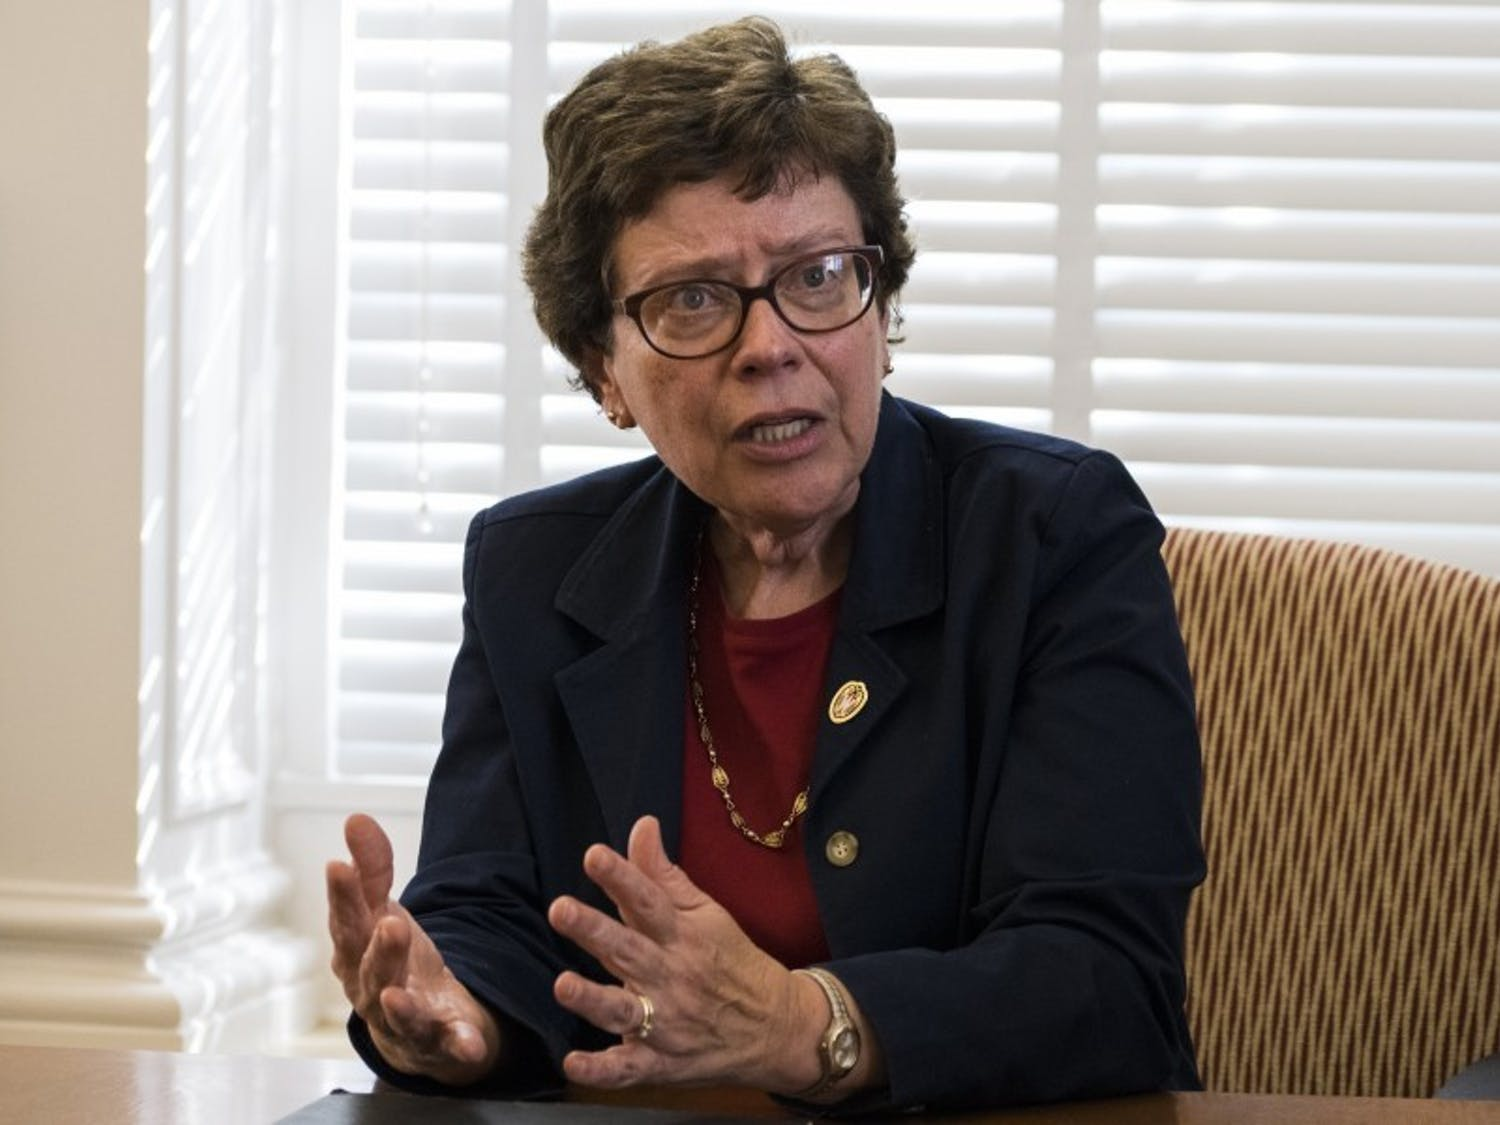 Photo of UW-Madison Chancellor, Becky Blank.